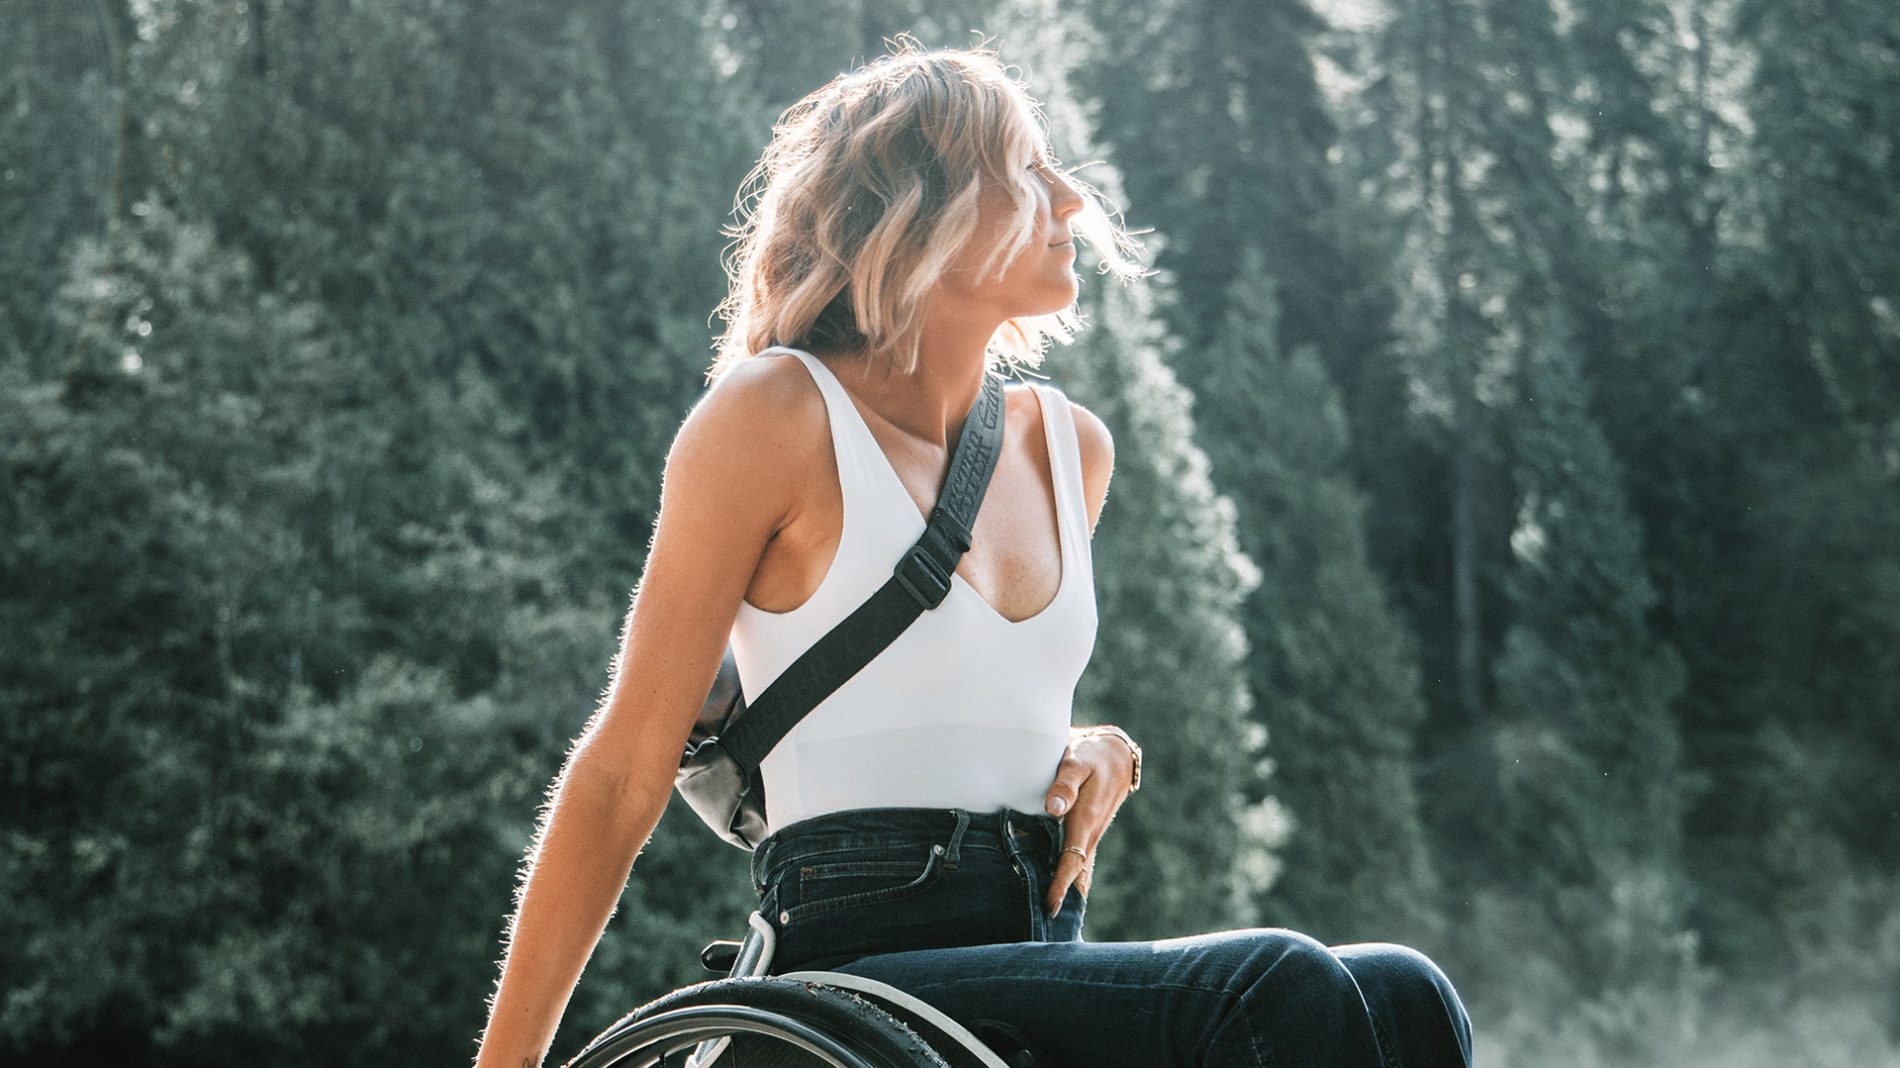 feminine person riding a wheelchair looking hopeful at the edge of a forest support PTSD